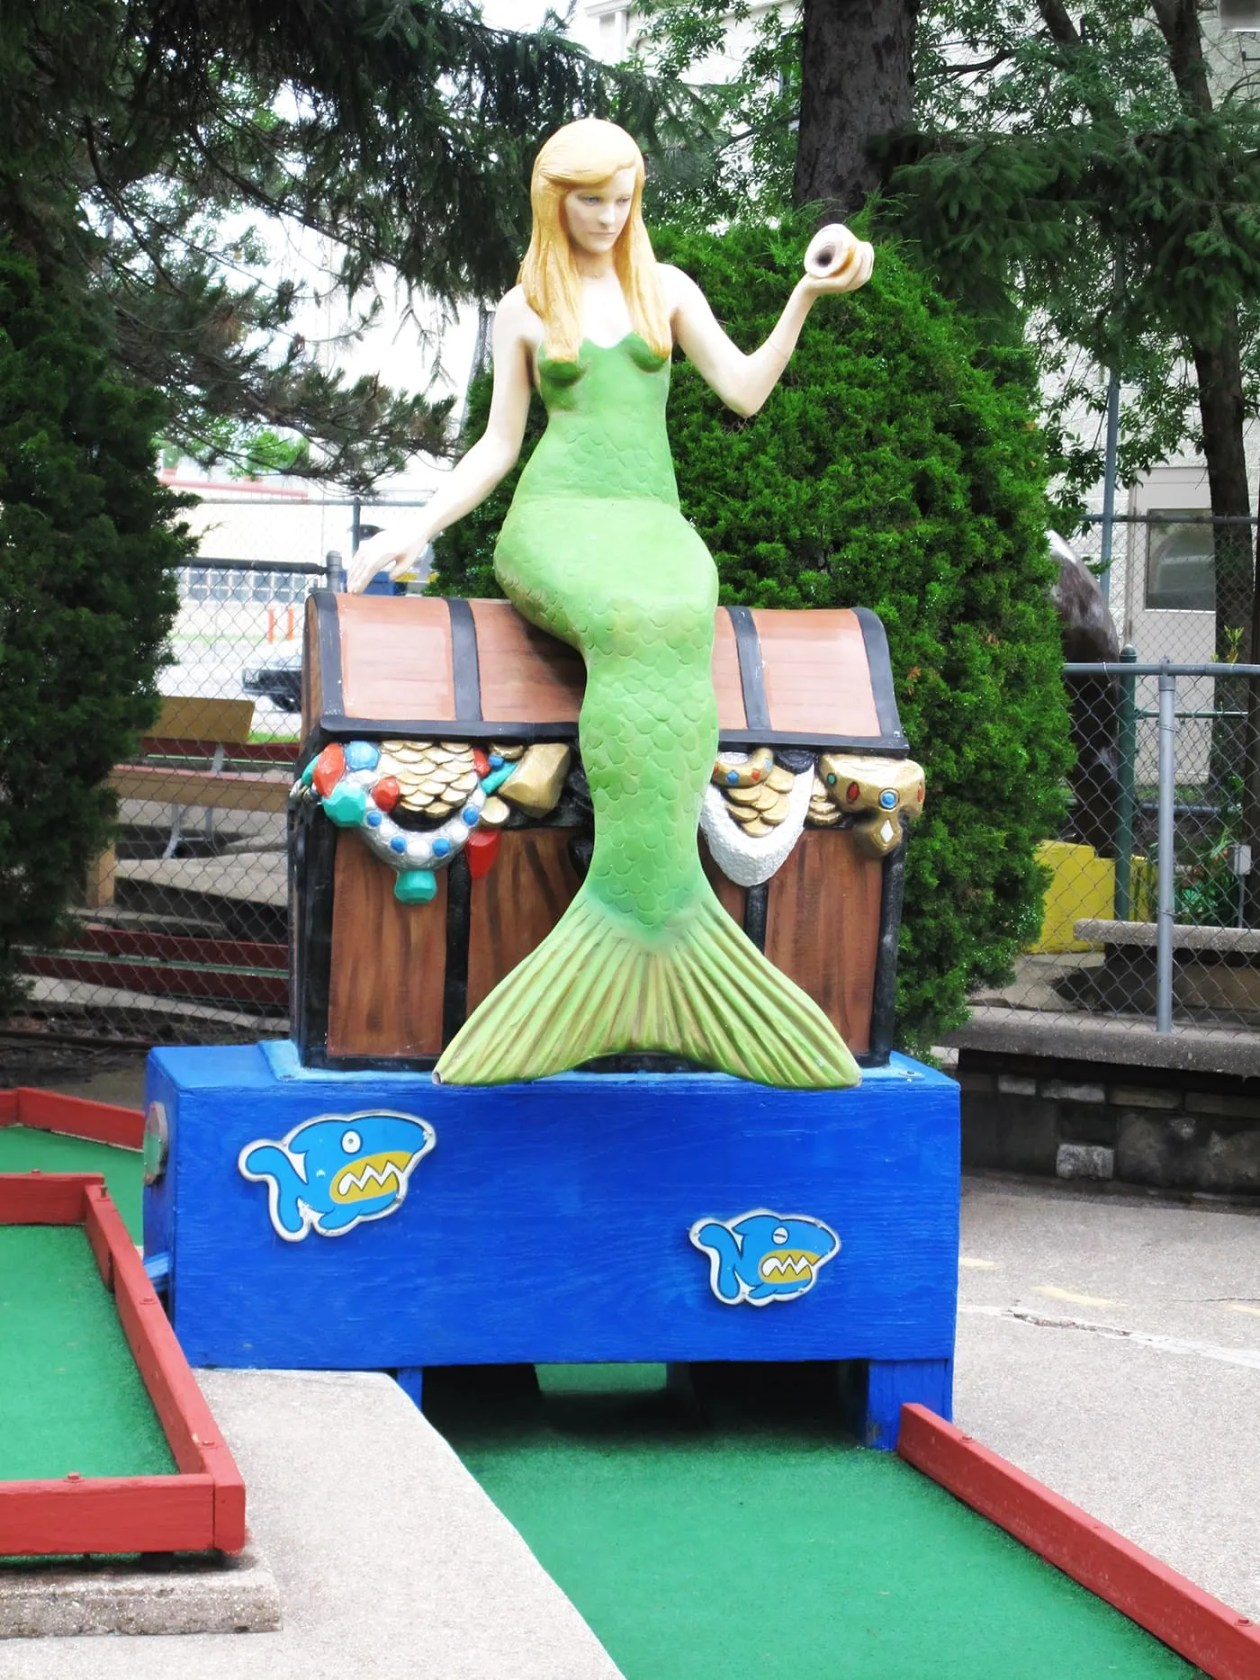 Mermaid at Novelty Golf in Lincolnwood, Illinois.